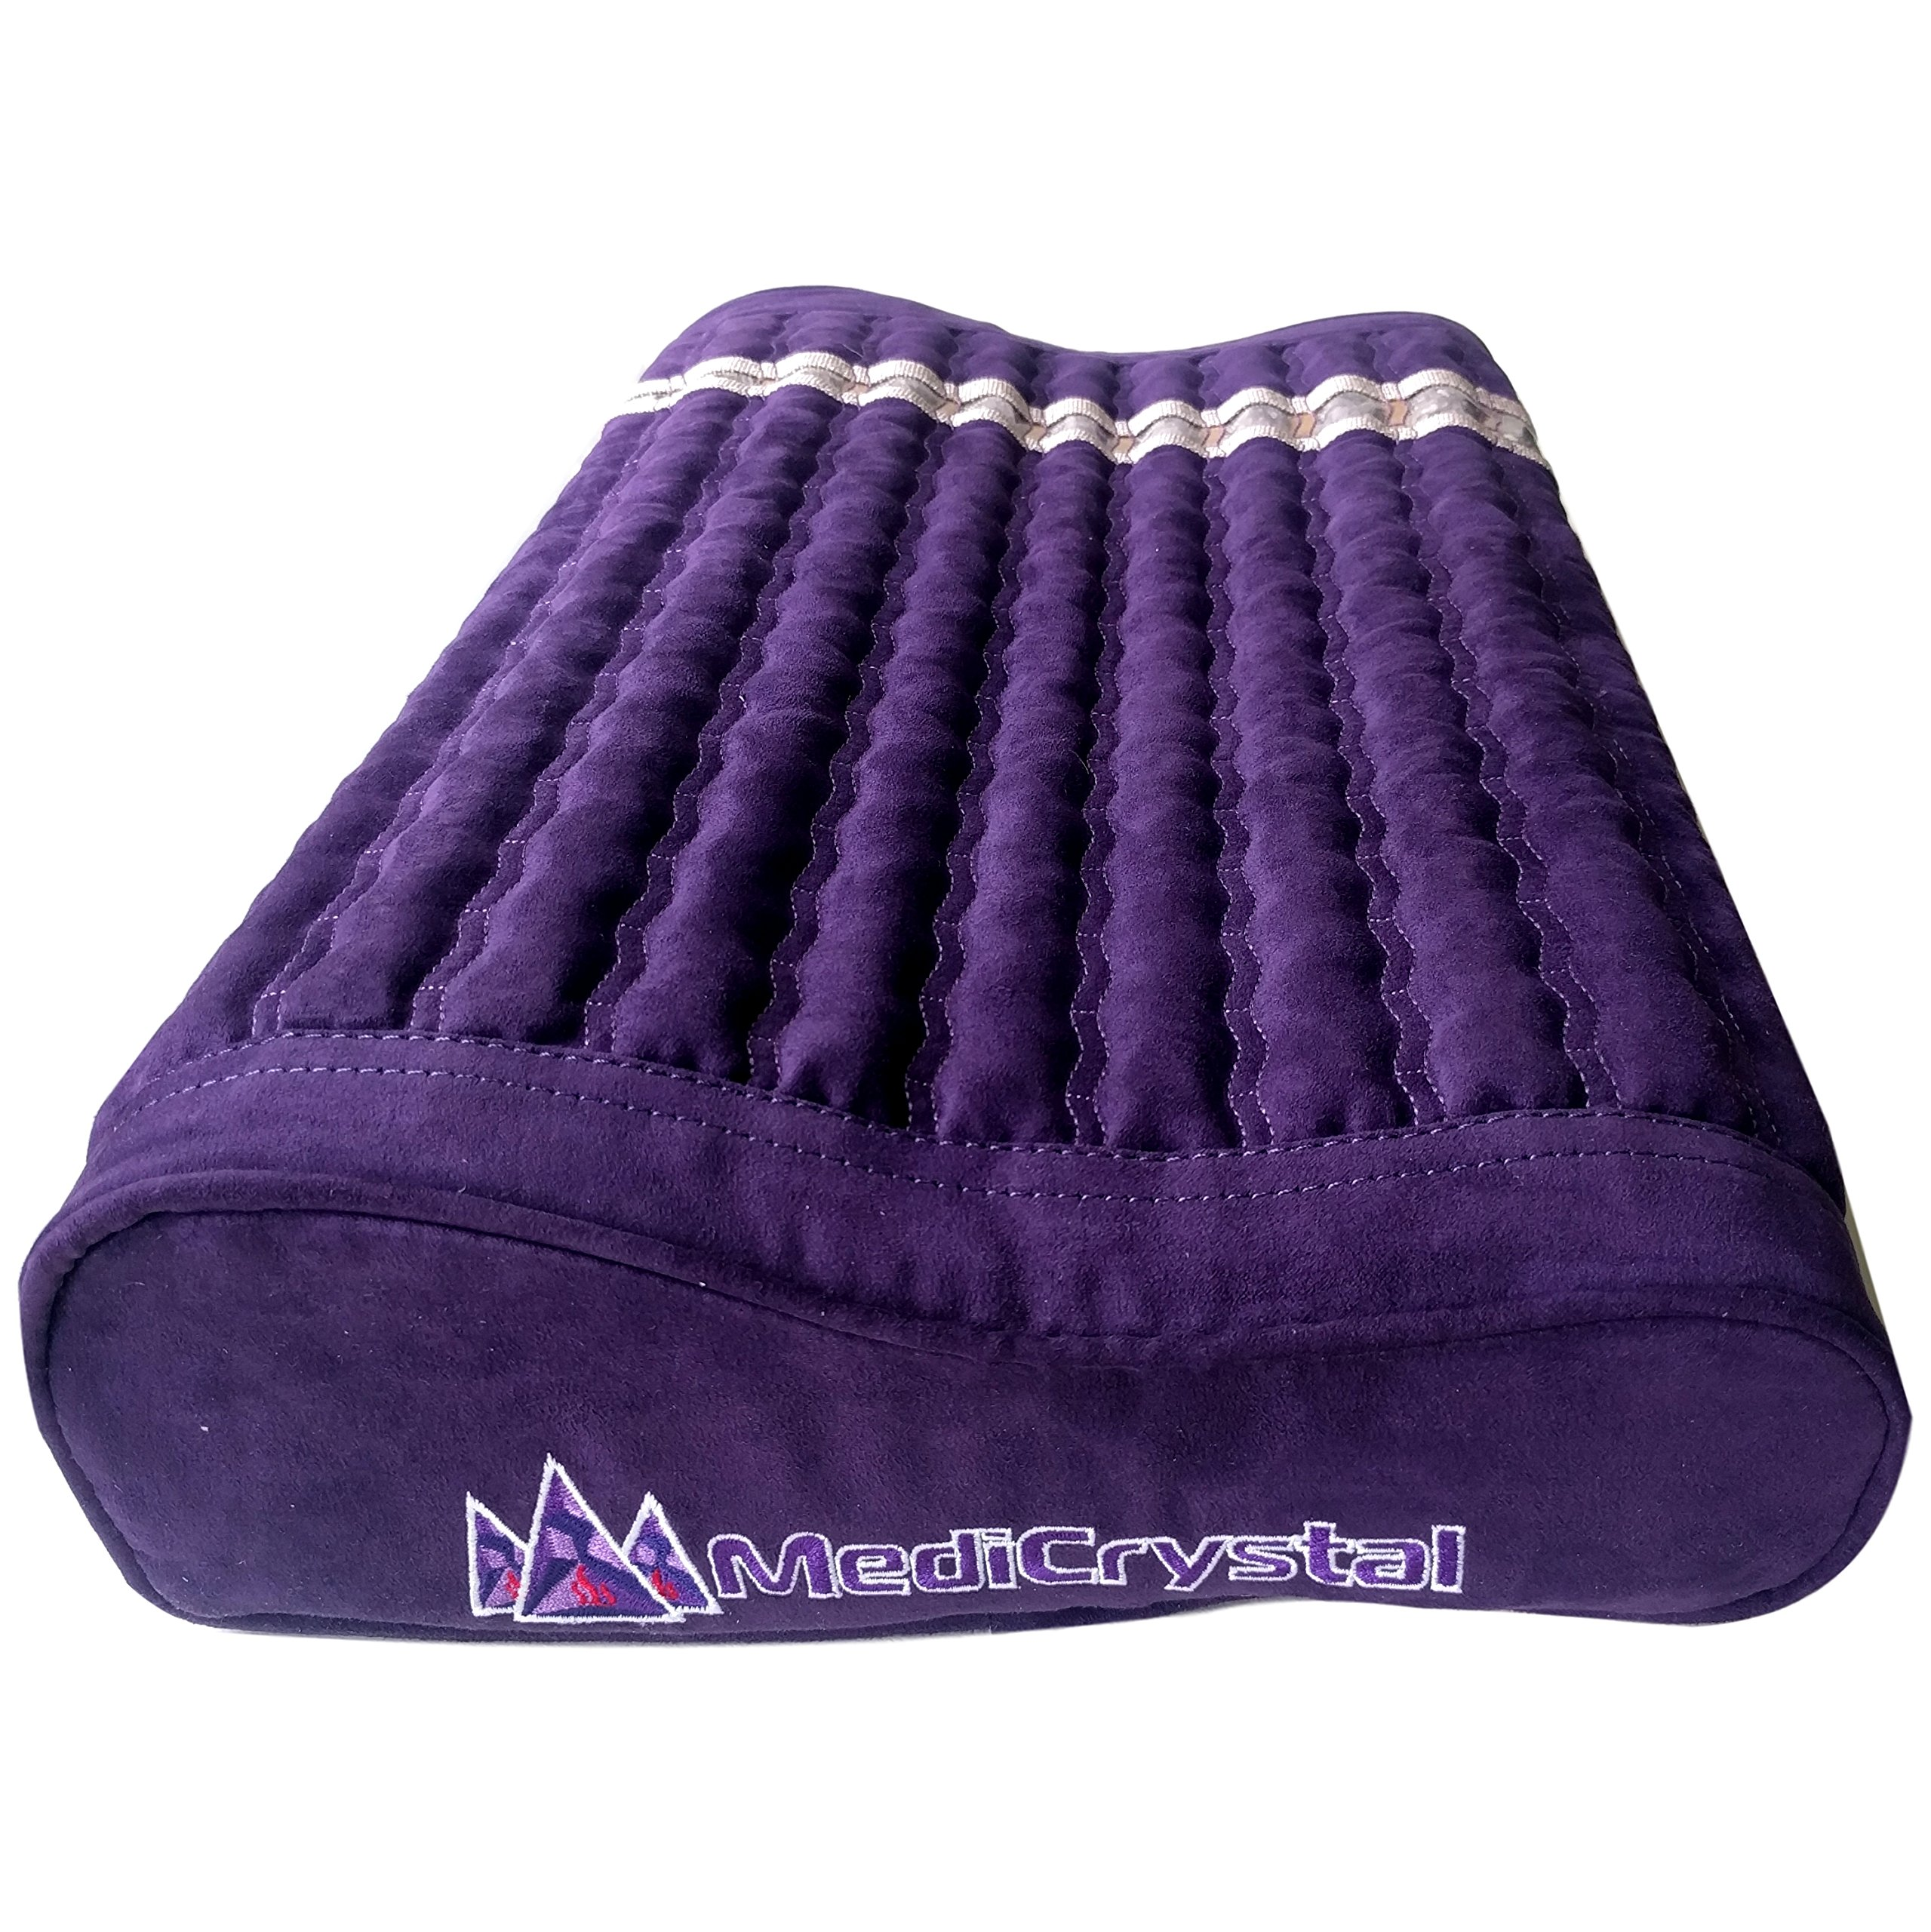 Far Infrared Amethyst Mat Pillow - Emits Negative Ions - Crystal FIR Rays - 100% Natural Amethyst Gemstones - Non Electric - For Headache and Stress Relief - To Sleep Better - GENTLE support - Purple by MediCrystal (Image #3)